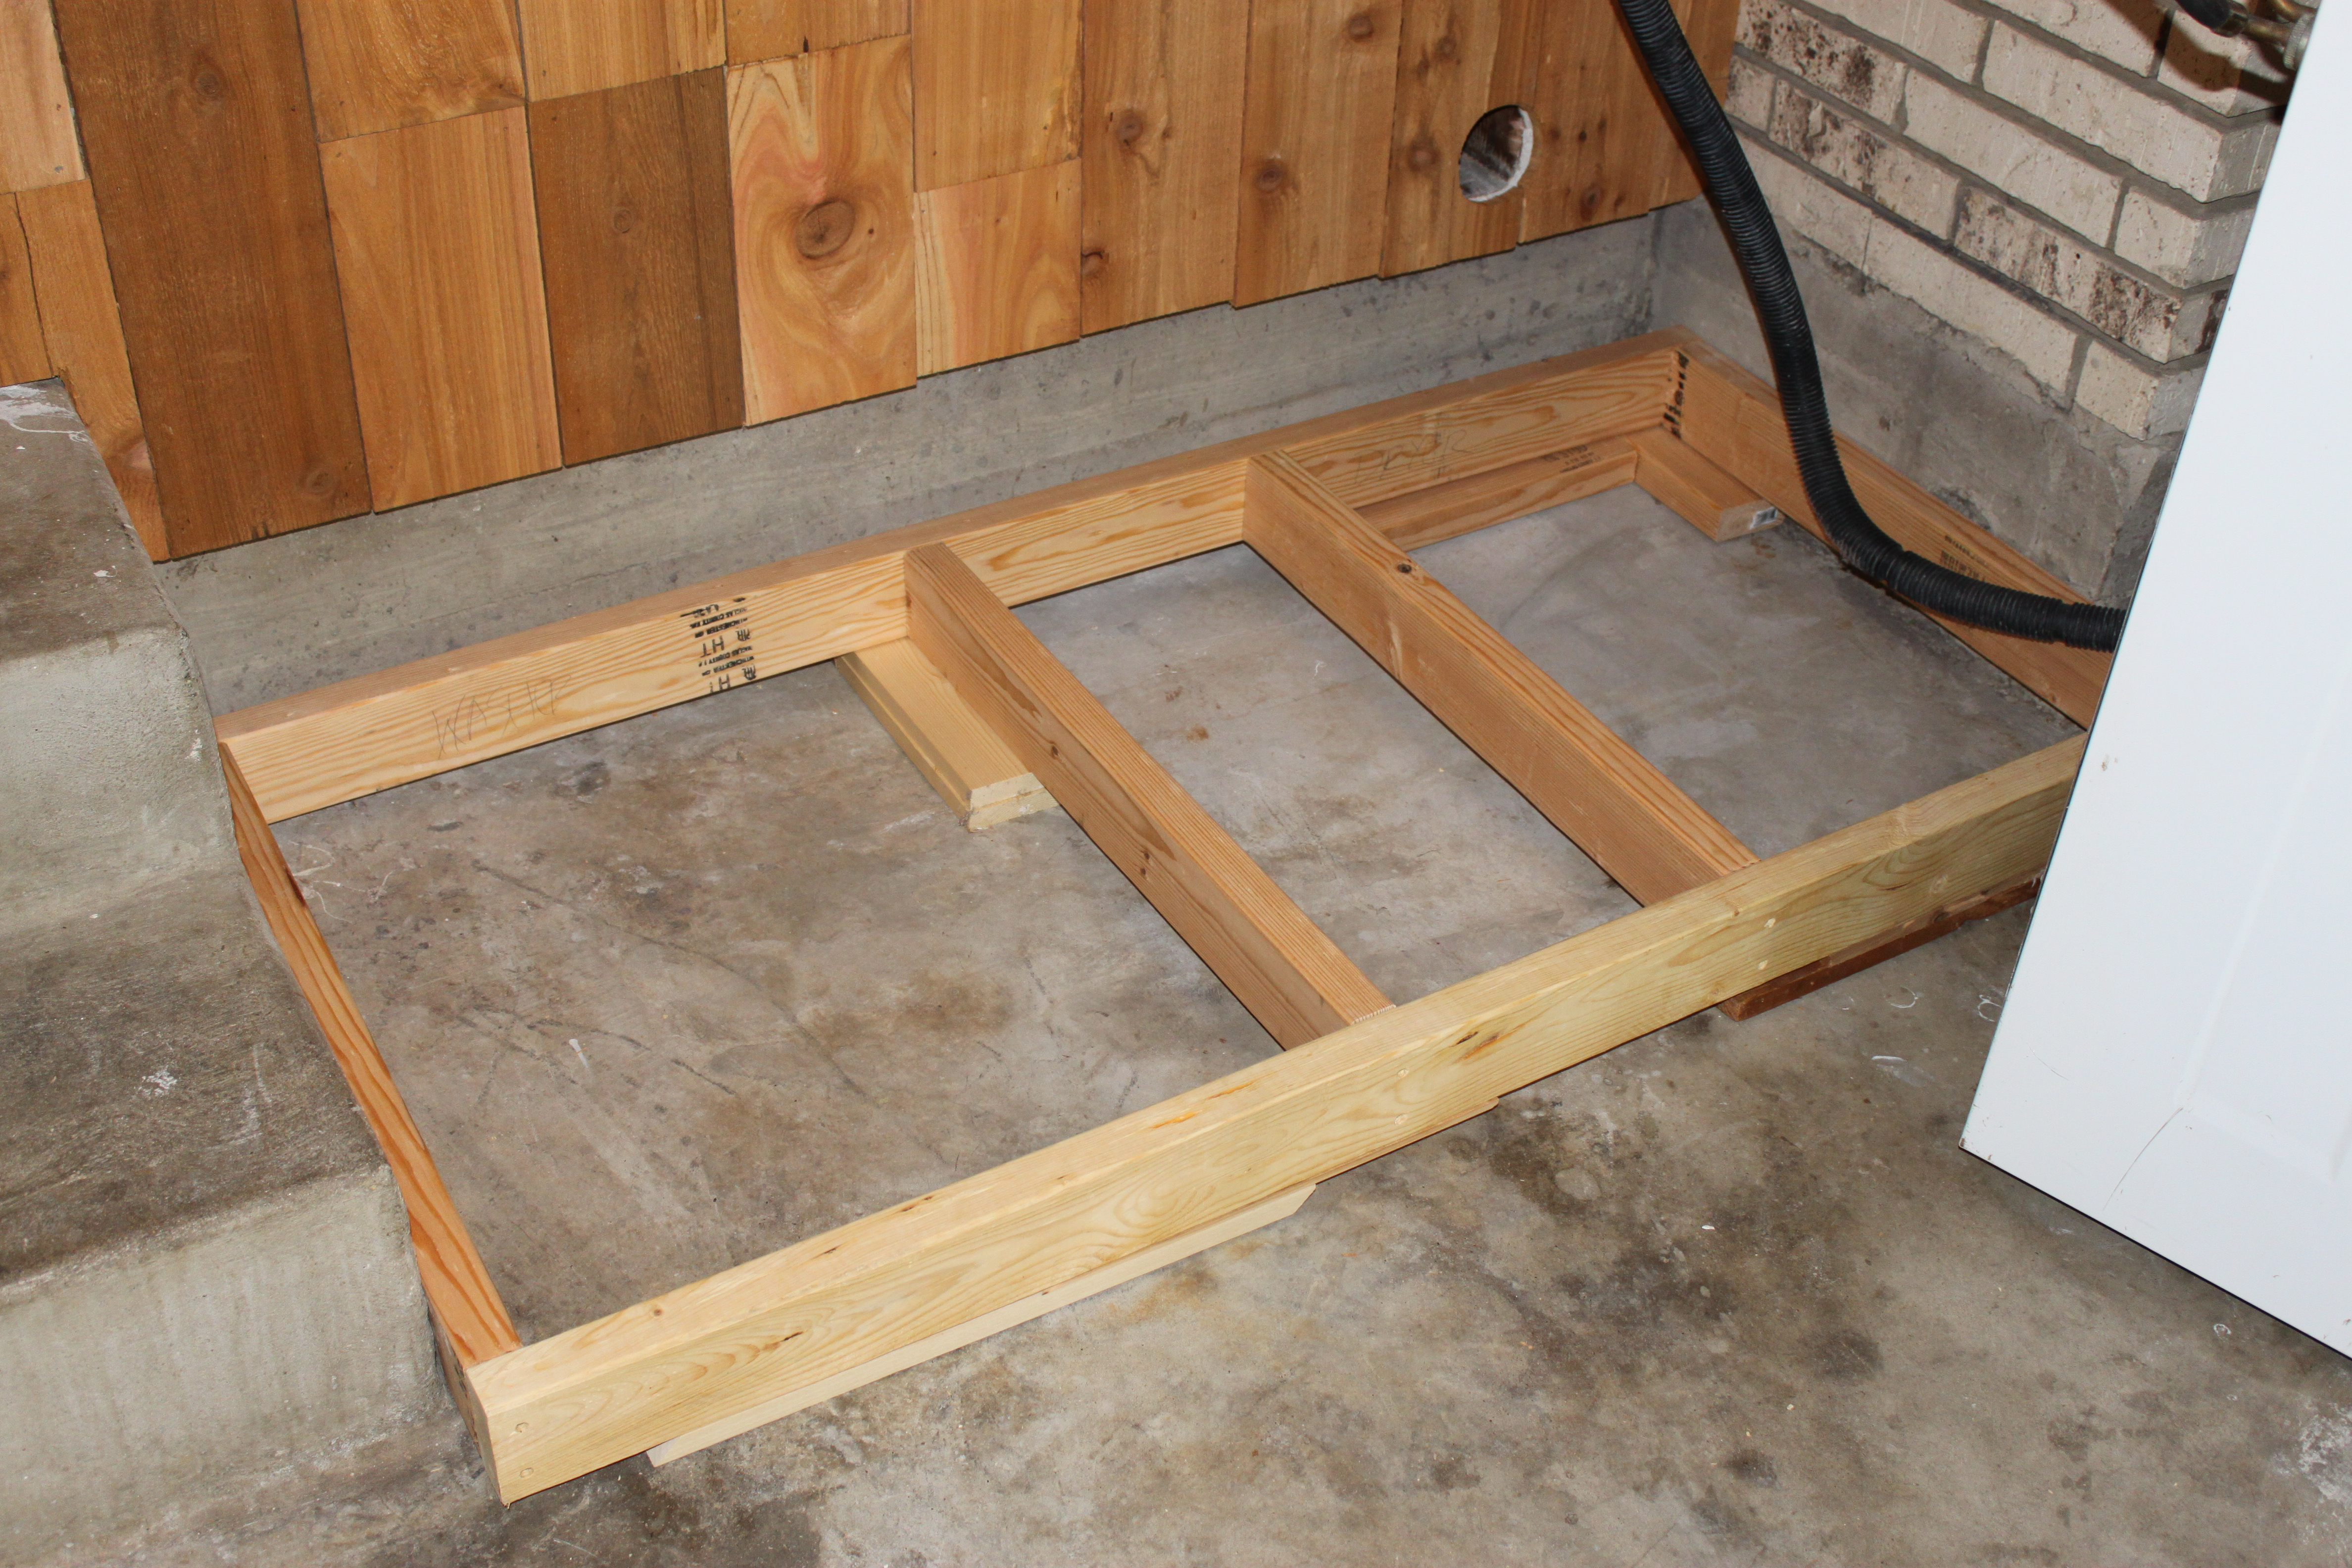 1 2 8 x 4 plywood plans diy how to make unusual64ijy for How to build a garage floor